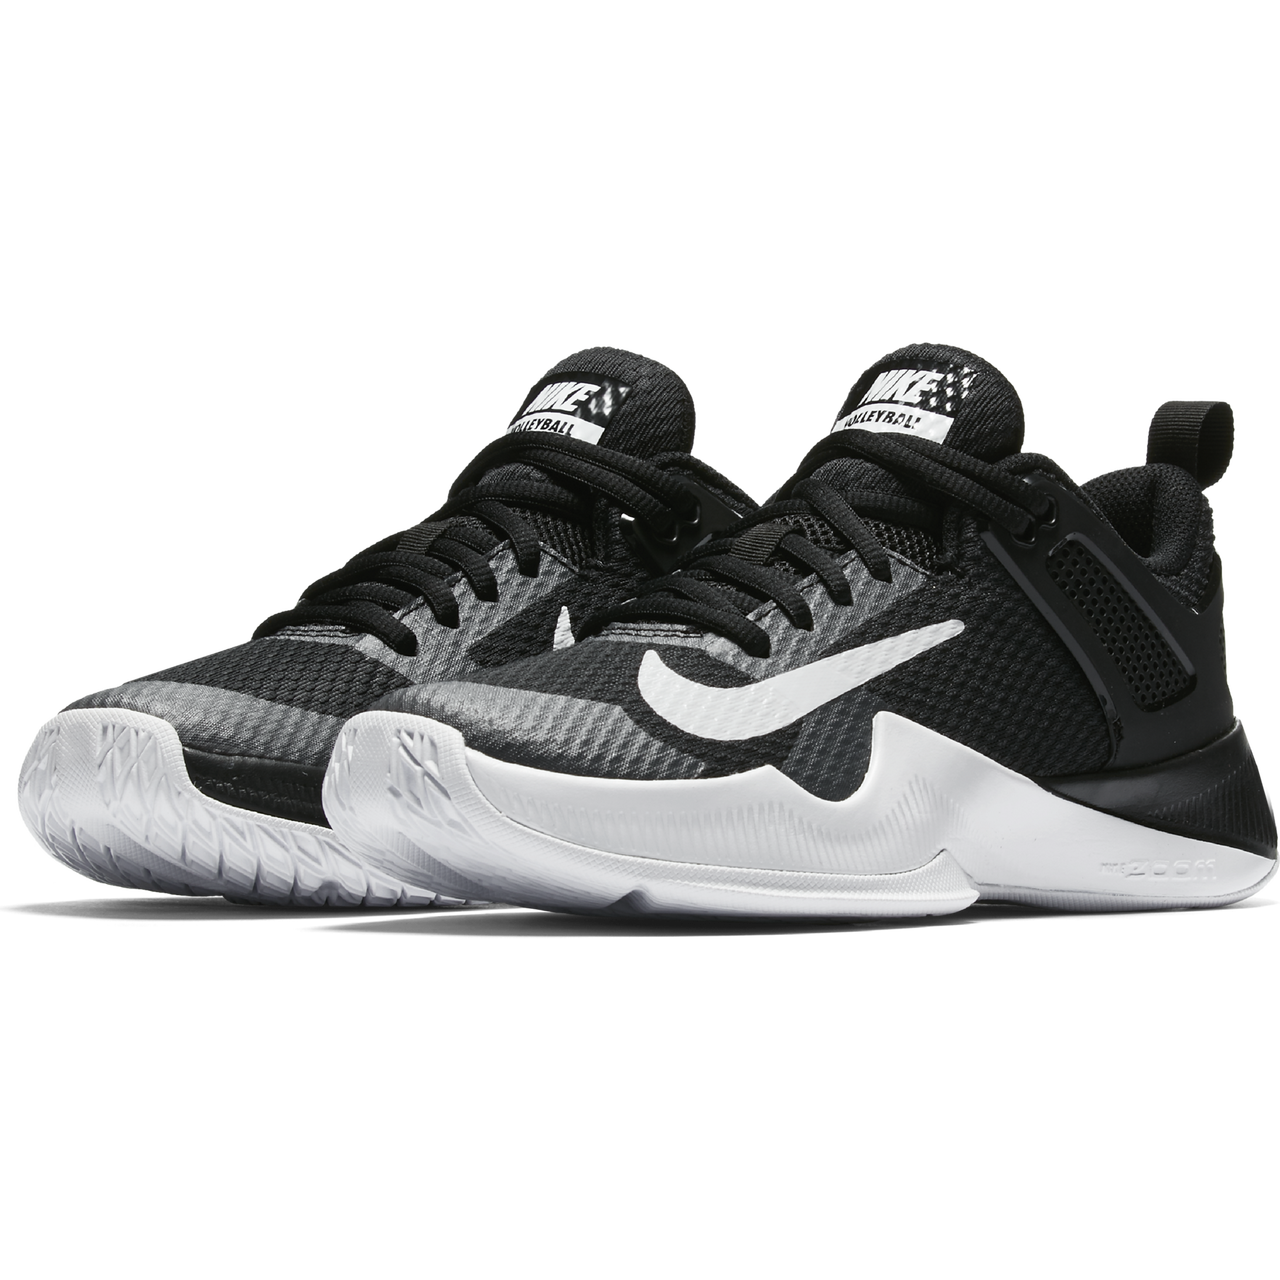 Nike Air Zoom Hyperace, Nike Volleyball